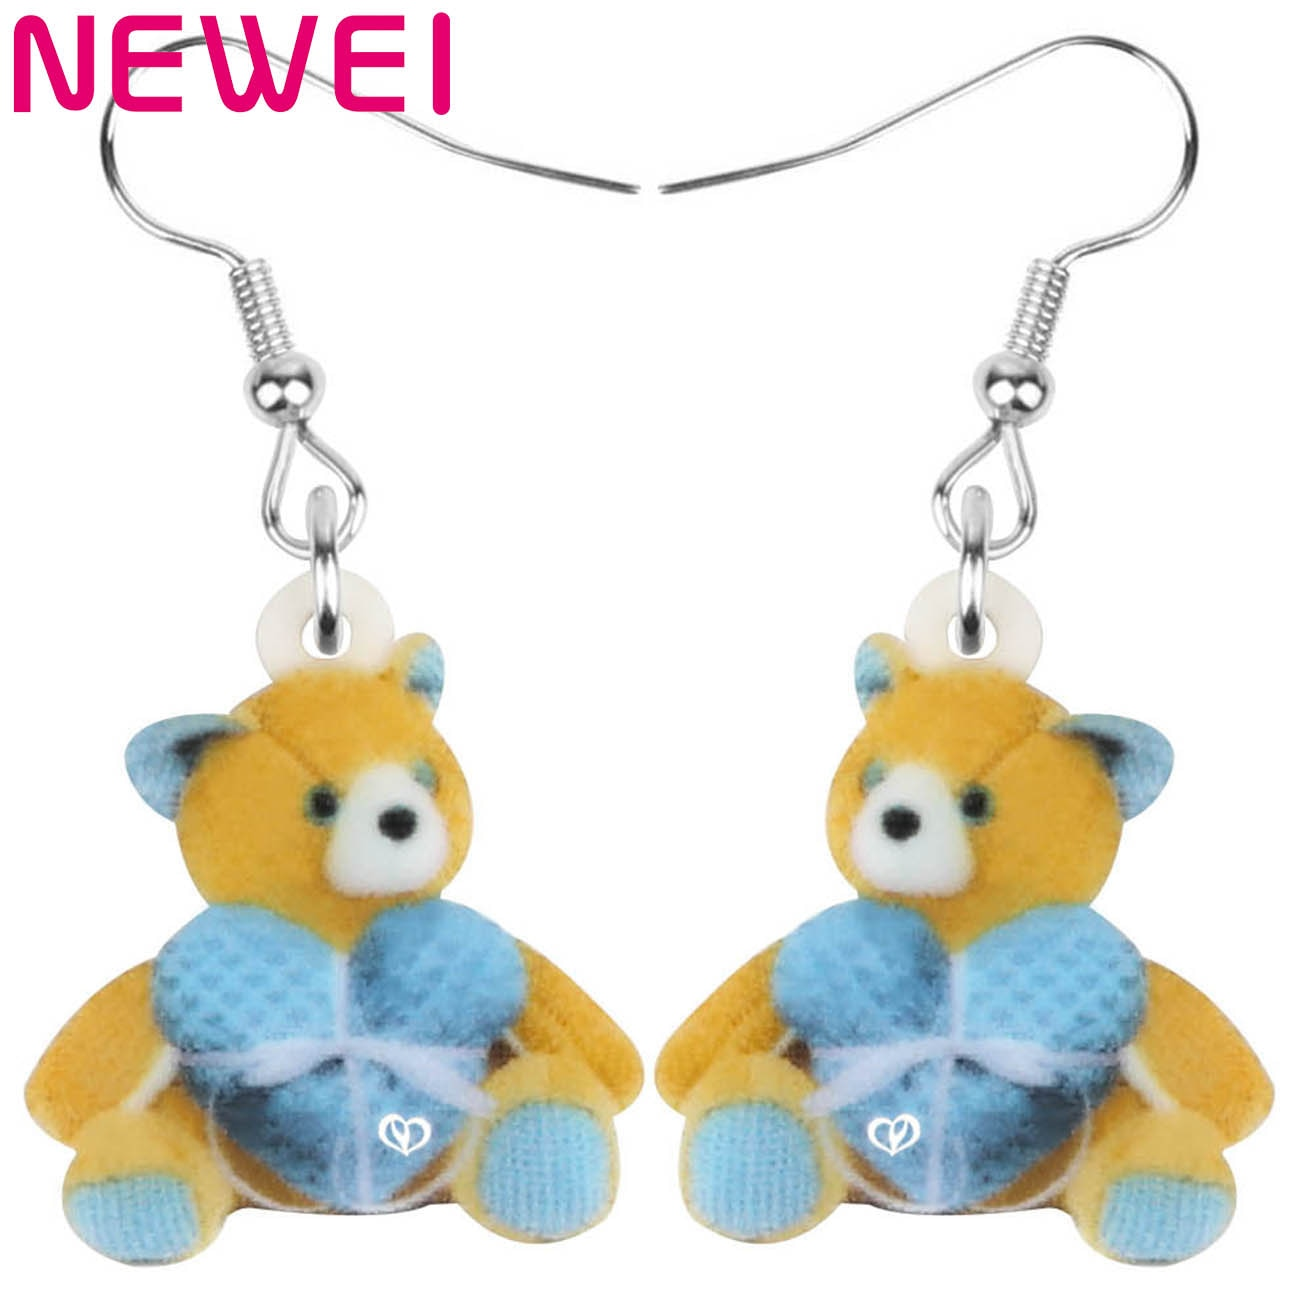 Newei Acrylic Heart Plush Teddy Bear Earrings Sitting Cute Toy Animal Dangle Drop Jewelry For Women Kid Fashion Gift Accessories